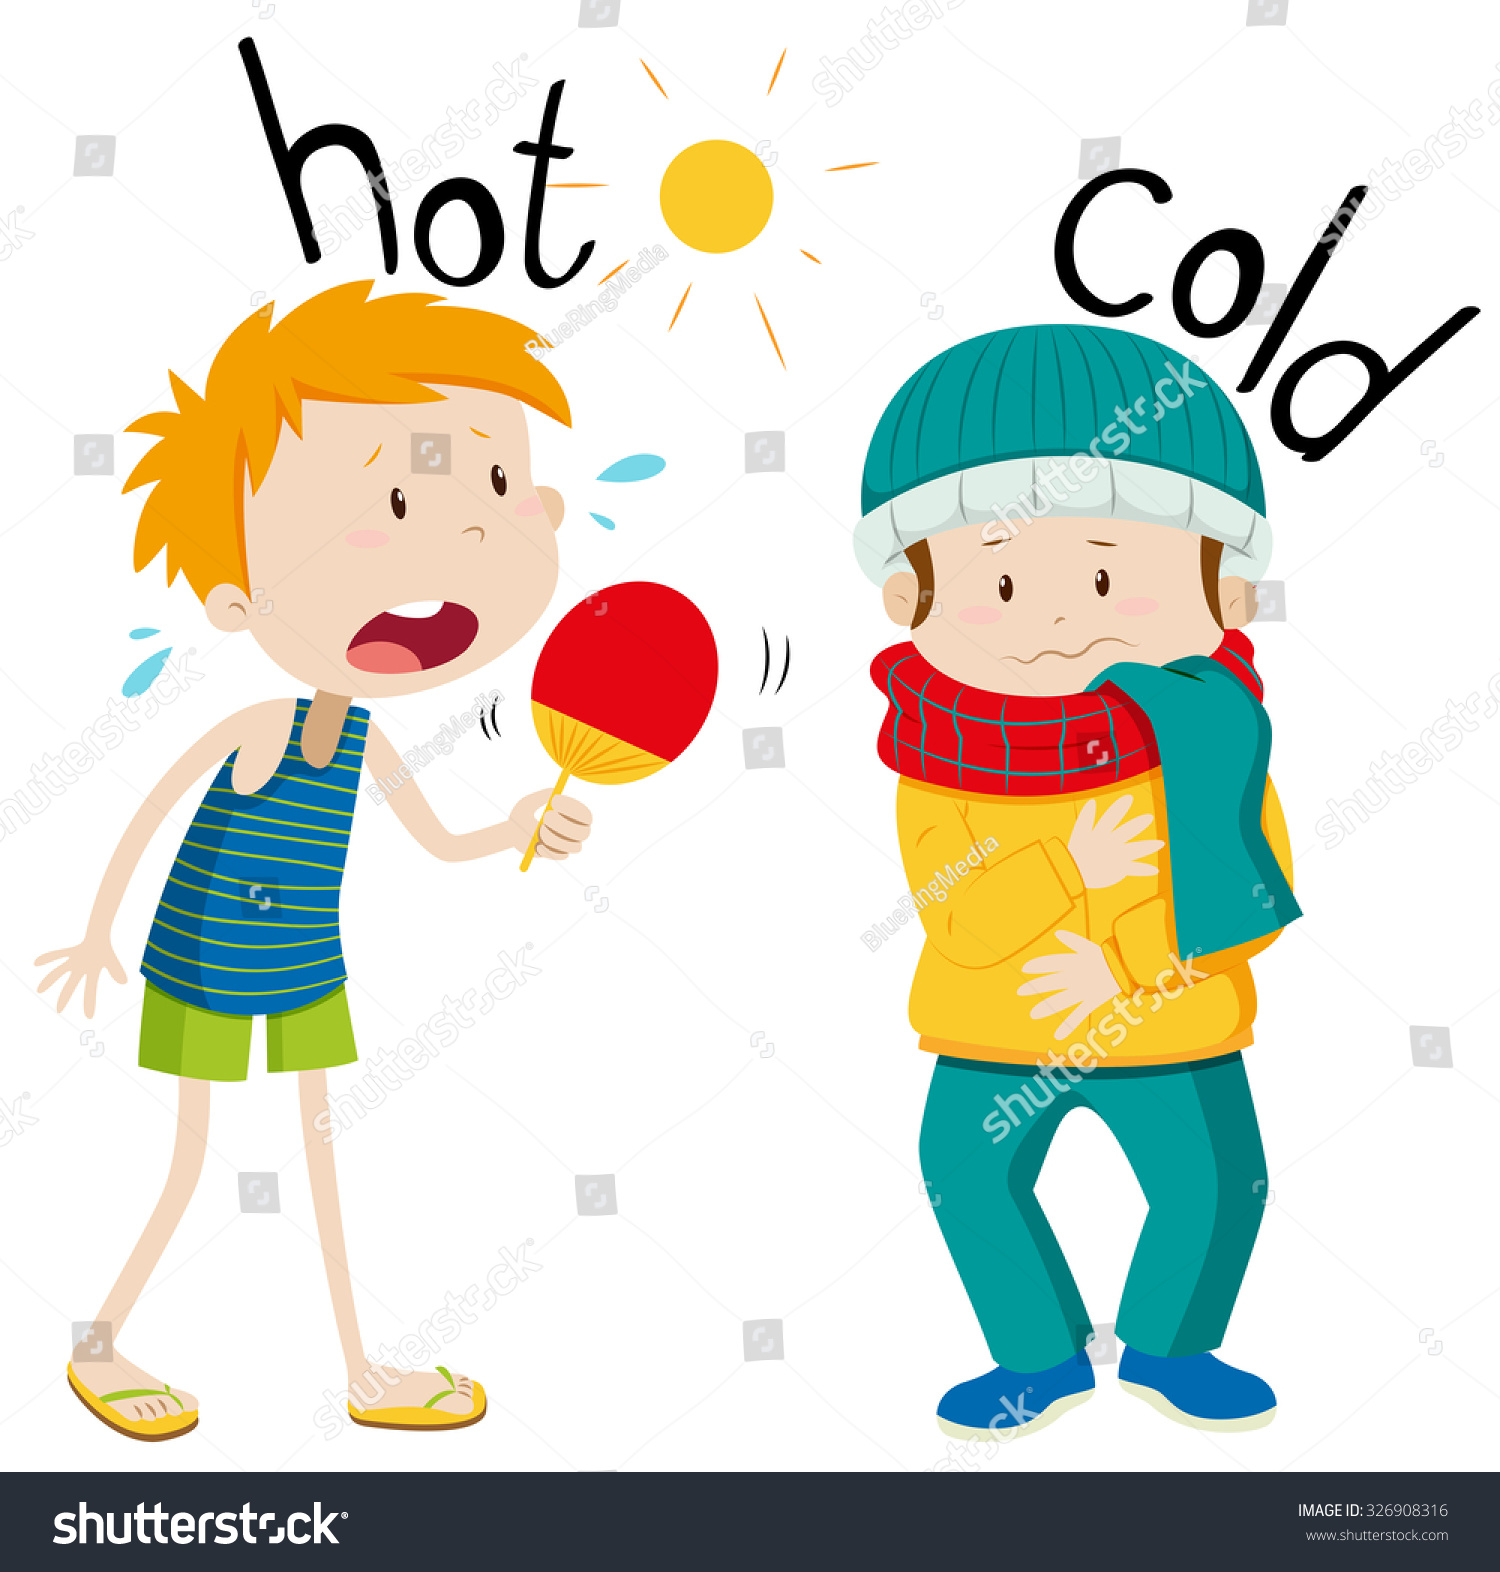 hot objects clipart - photo #12